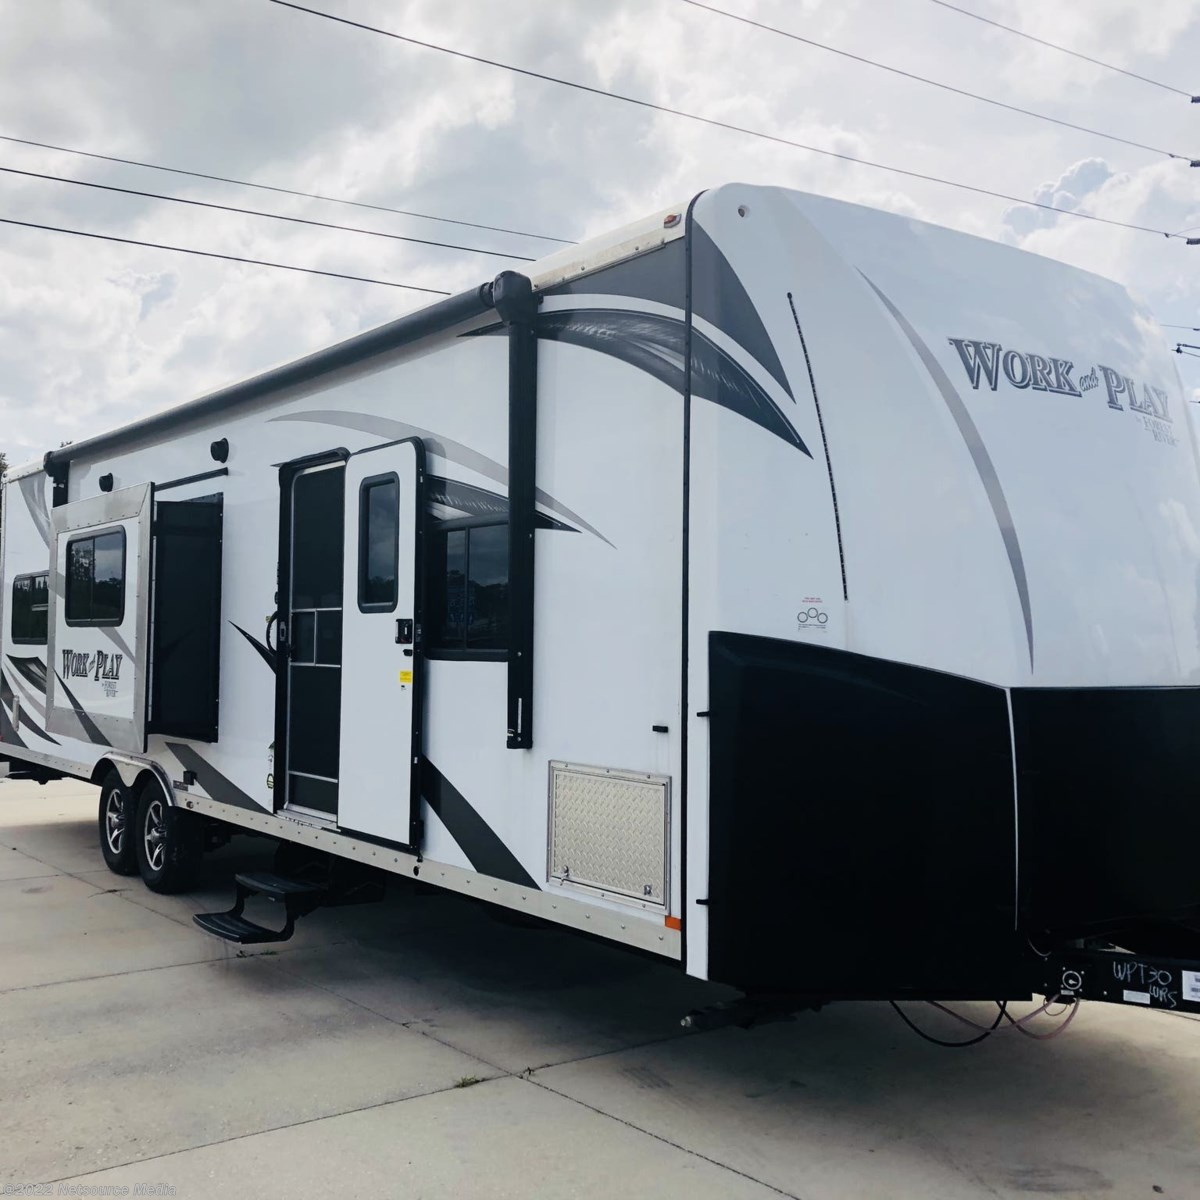 Work17455 2017 Forest River Work And Play30wrs For Sale In Bushnell Fl 2000 Coachmen Catalina Wiring Diagram